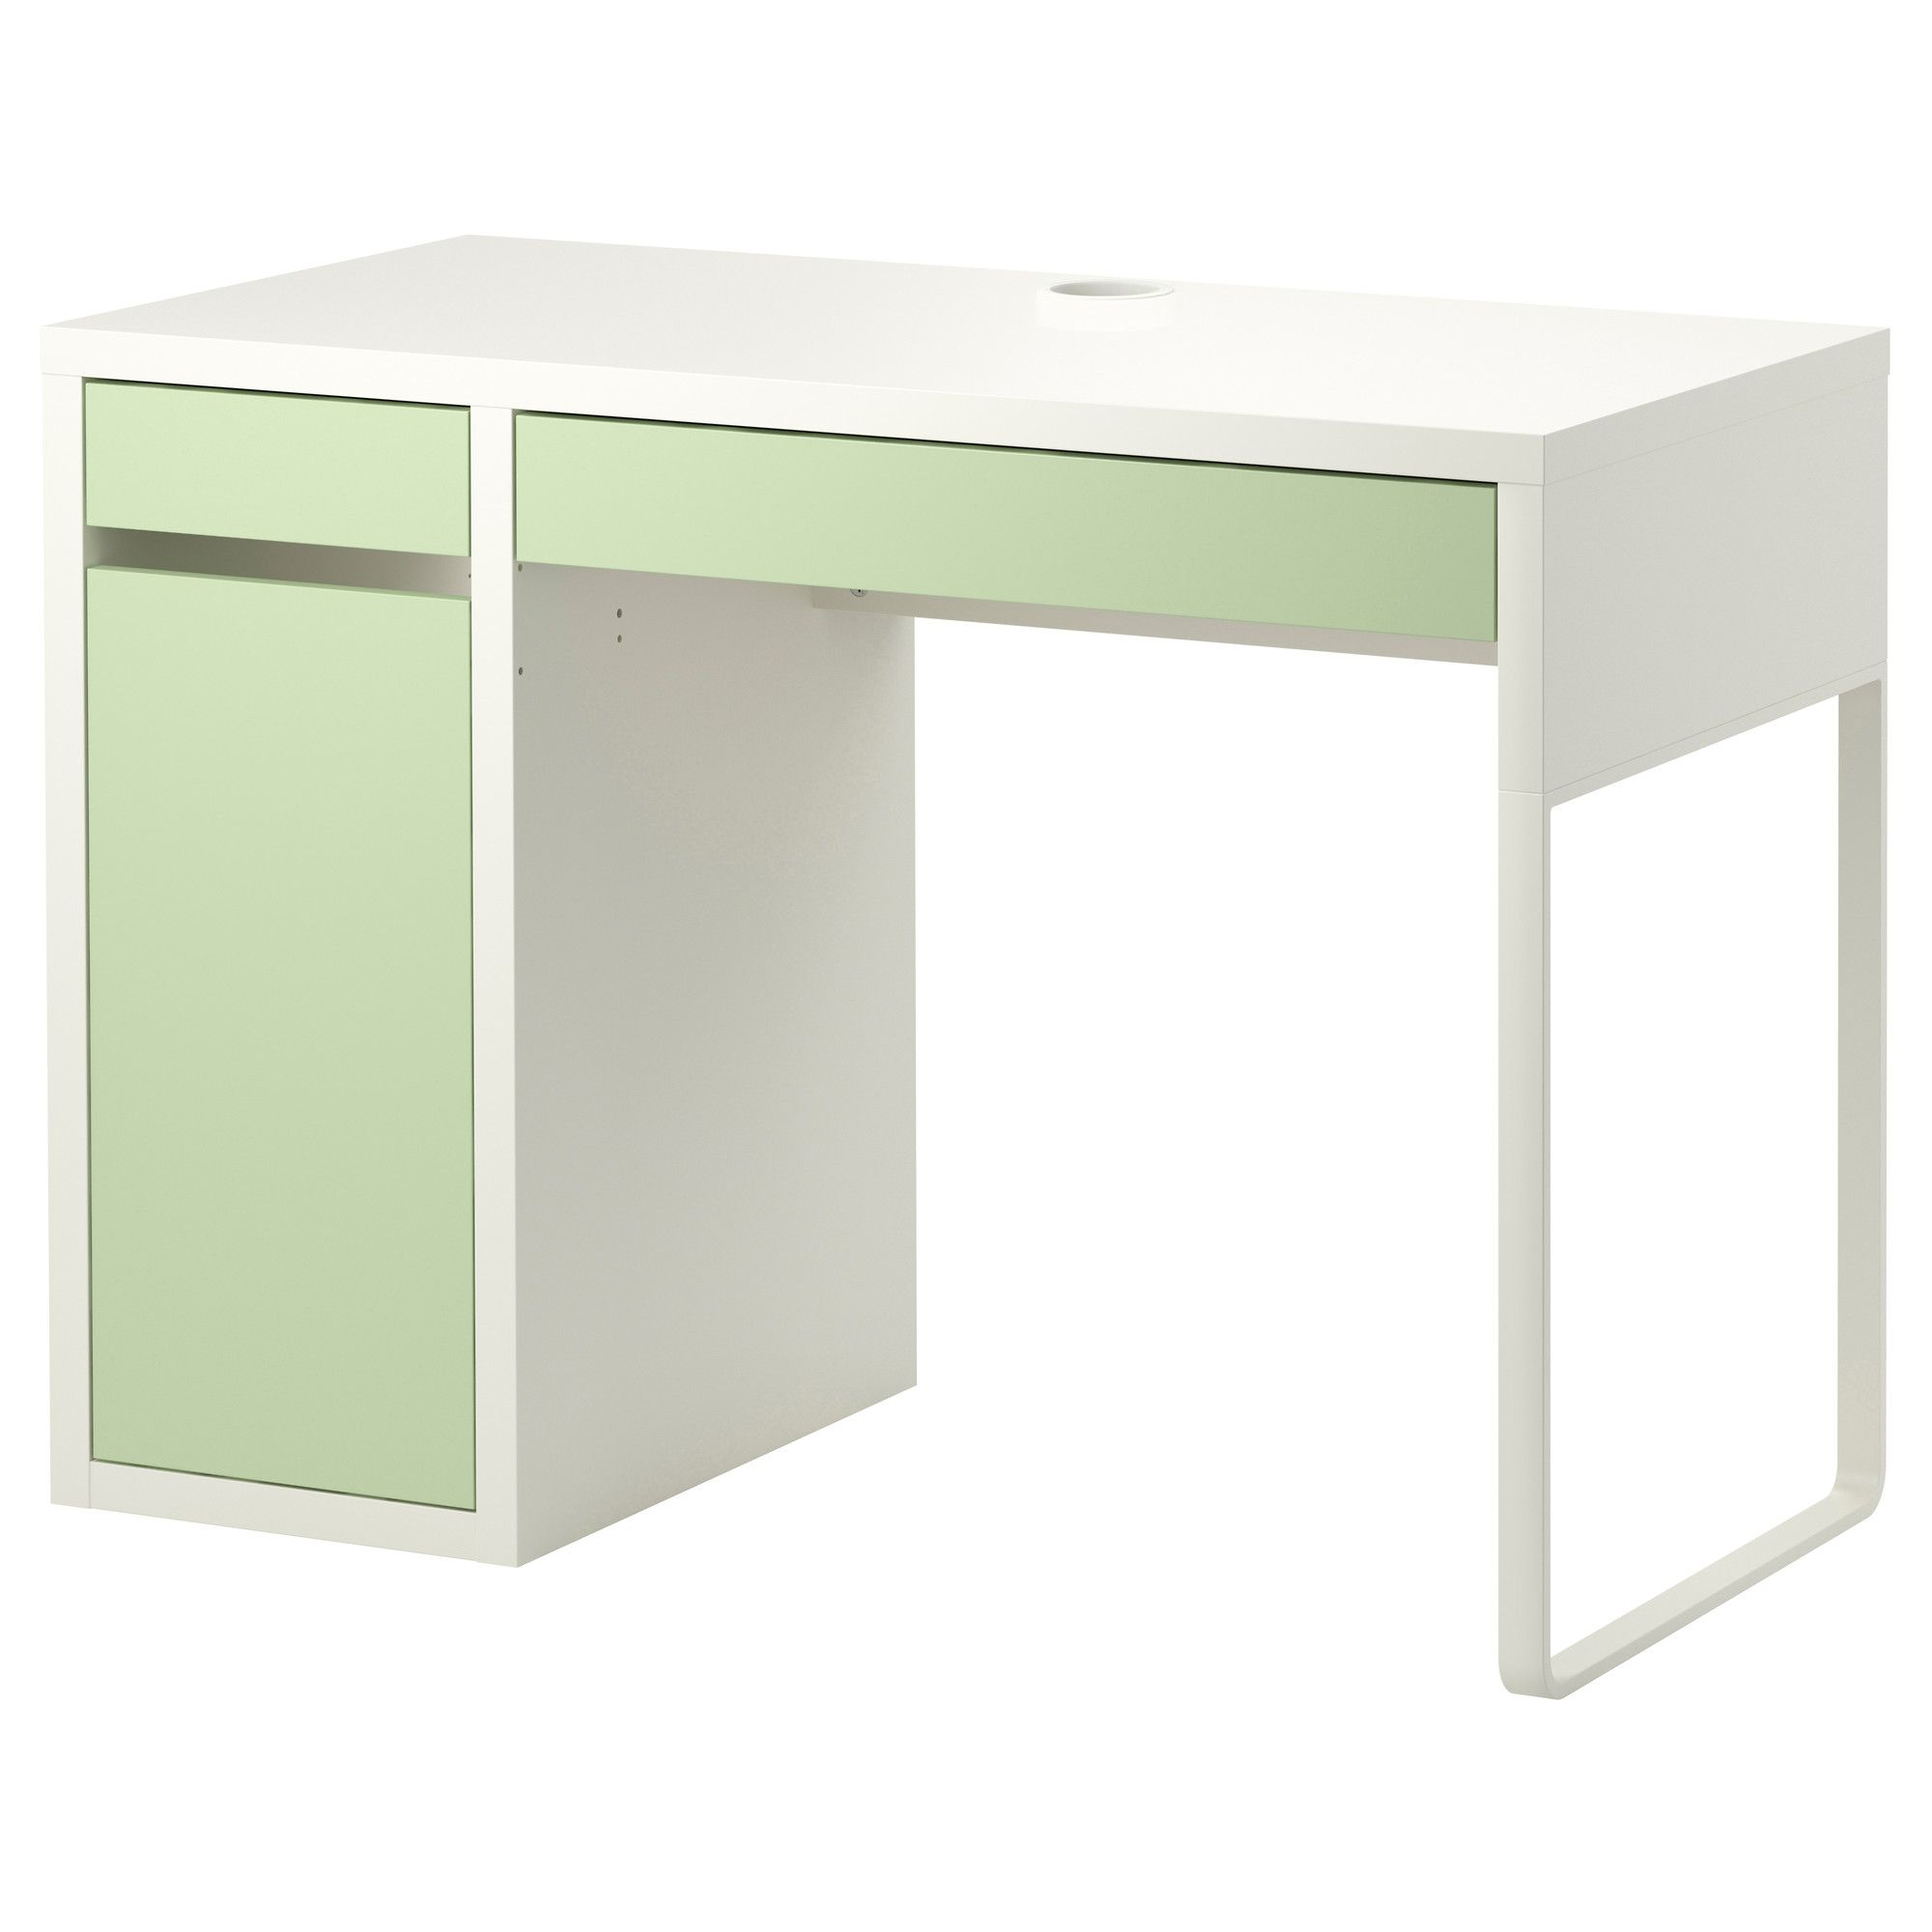 micke bureau blanc vert clair ikea chambre garcon pinterest coin bureau chambre. Black Bedroom Furniture Sets. Home Design Ideas